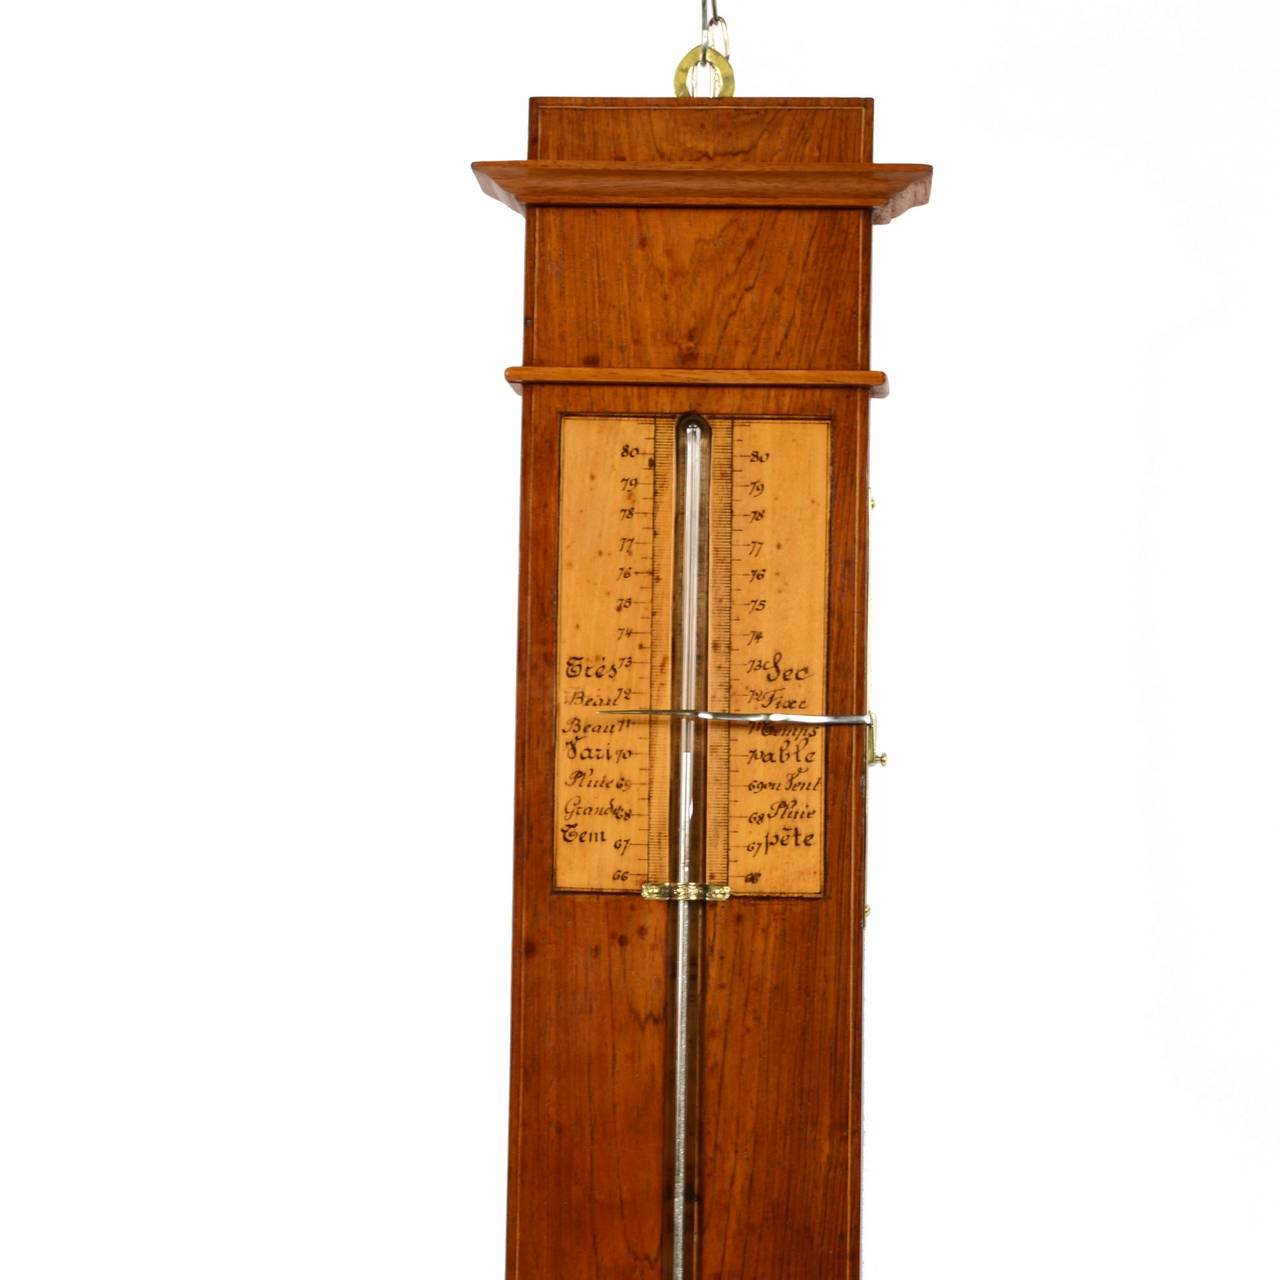 first mercury thermometer - photo #13